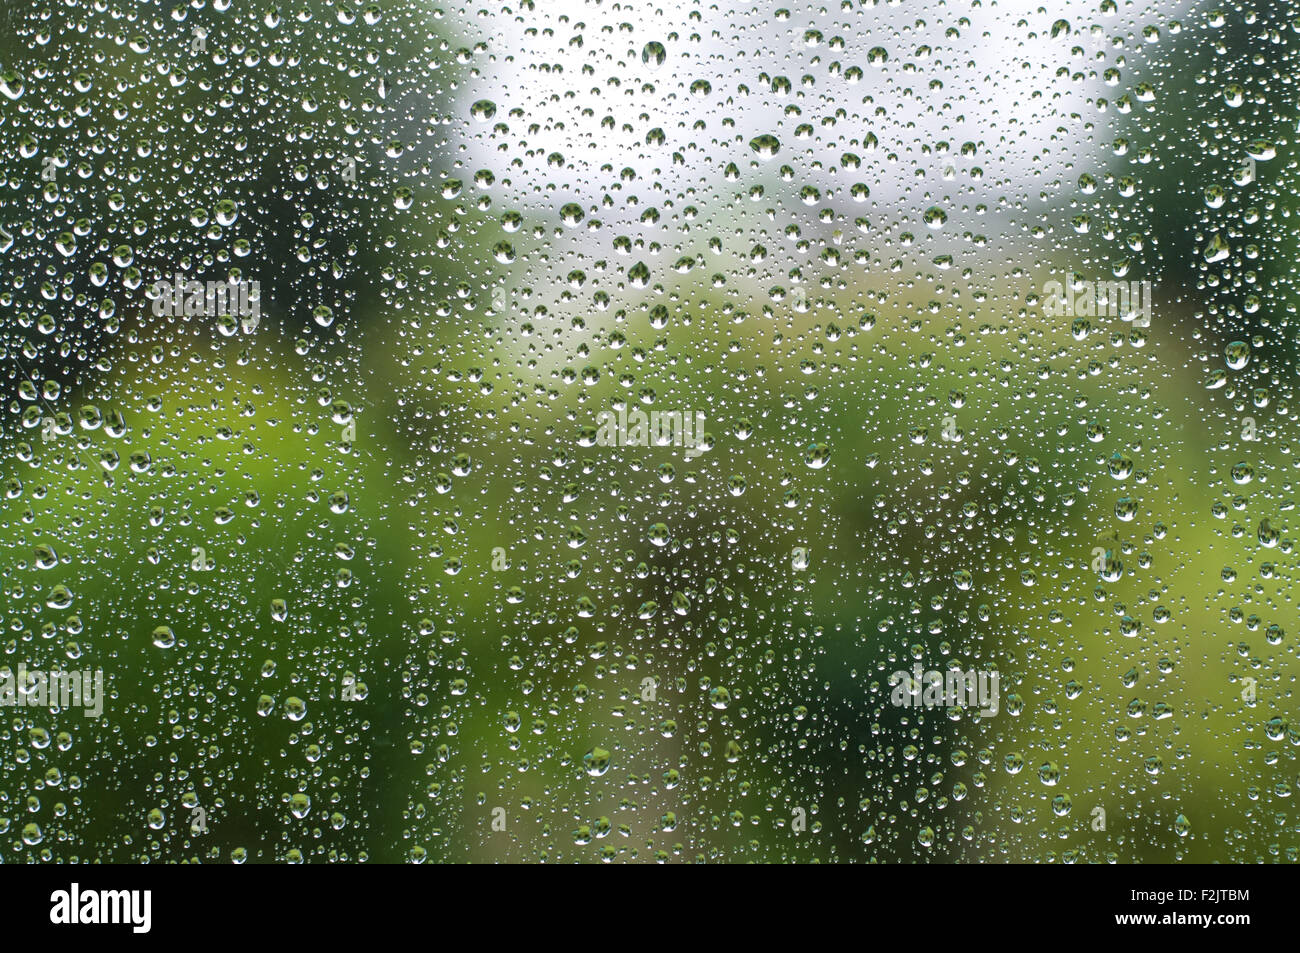 Rain drops on a window in front of out of focus green scenery. - Stock Image